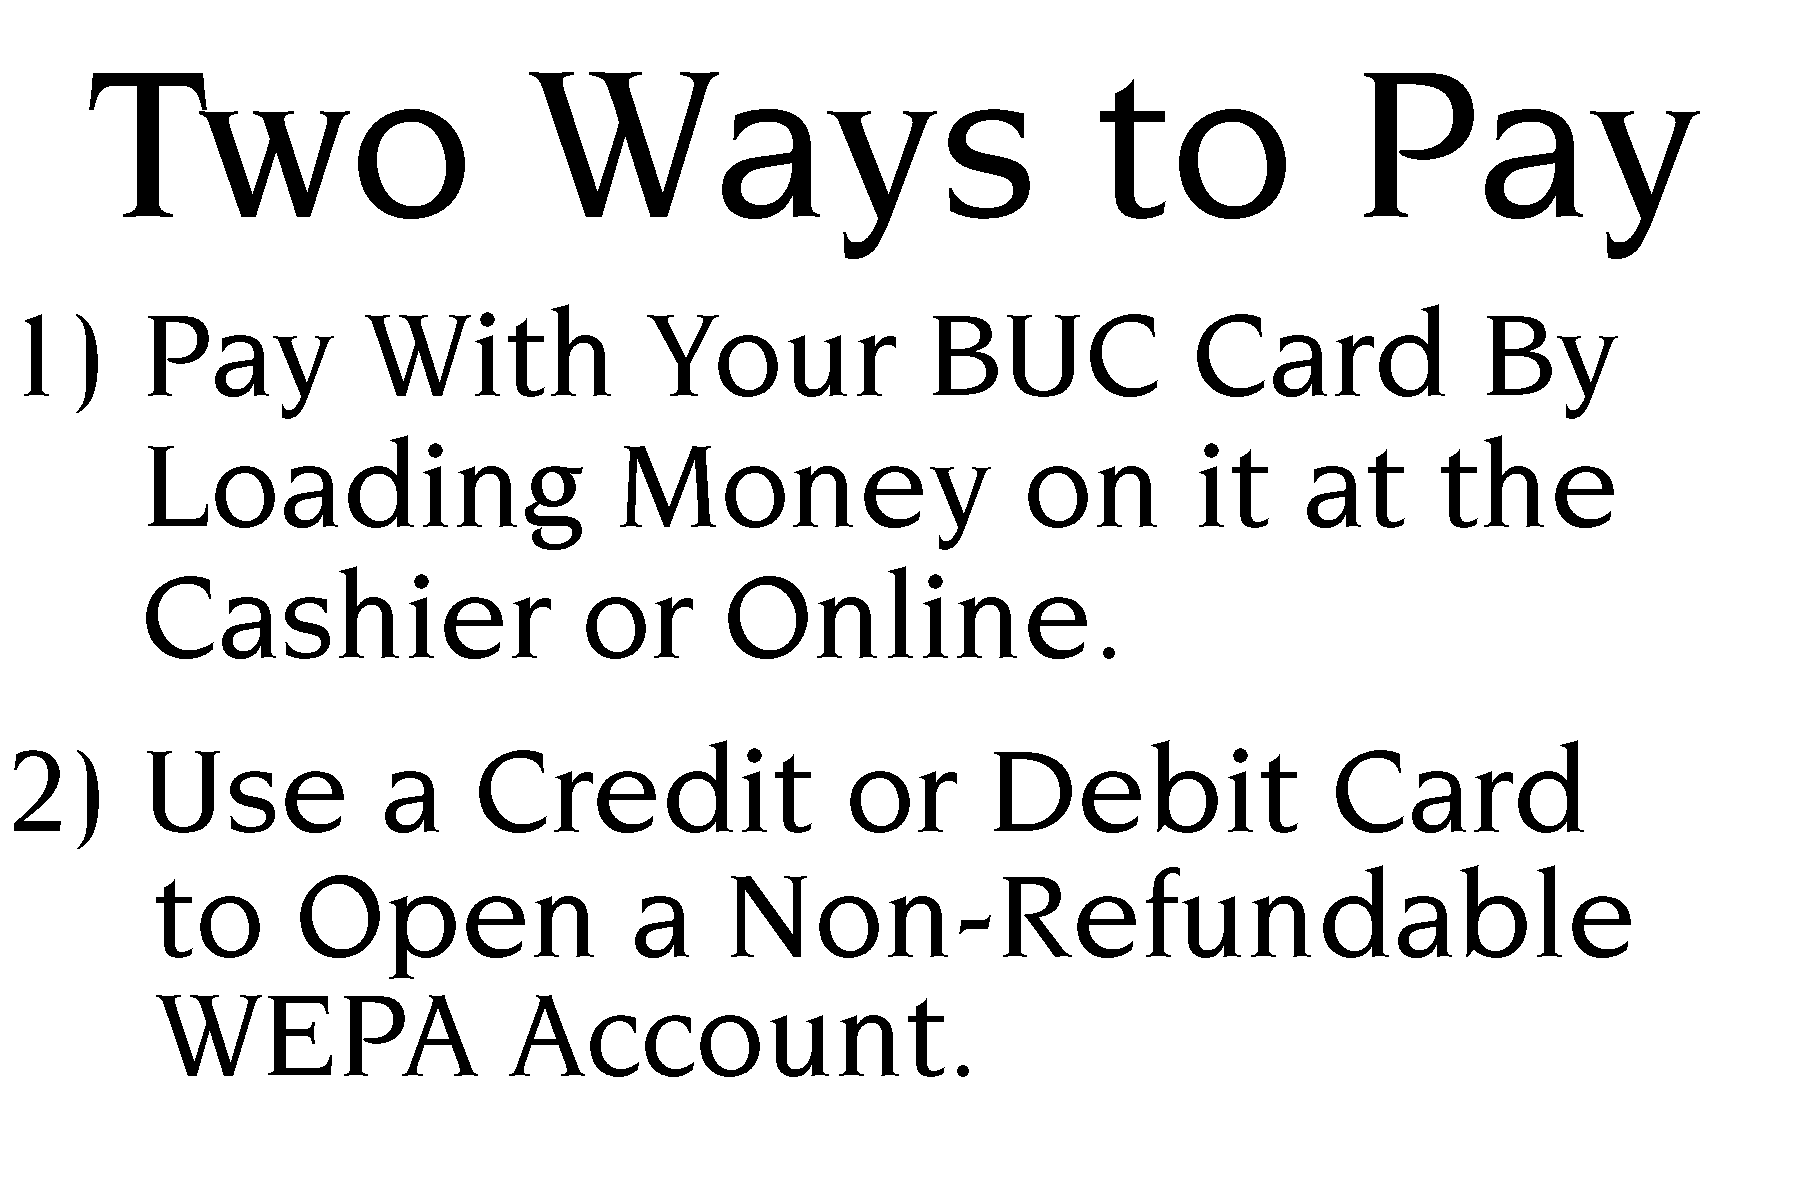 Two ways to pay. 1. Pay with your buc card by loading money on it at the cashier or online. 2. Use a credit or debit card to open a non-refundable wepa account.